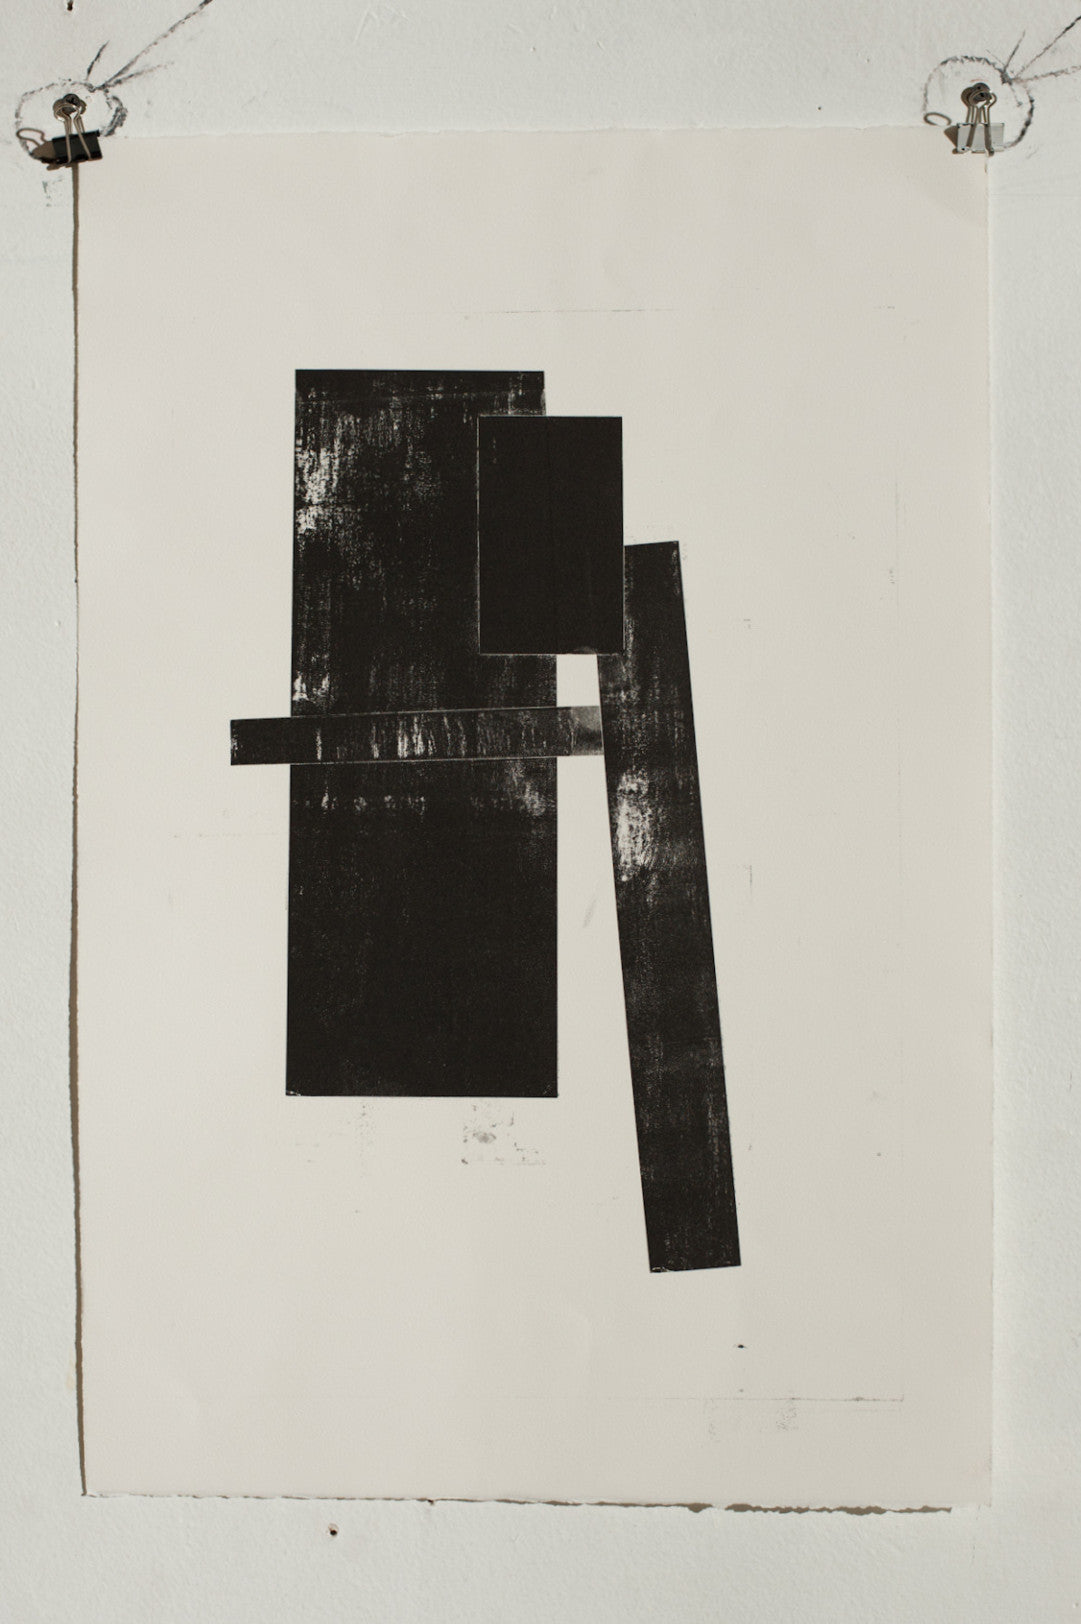 Manuel Zeitlen - Untitled 5 - Lithograph Print on Archival Paper